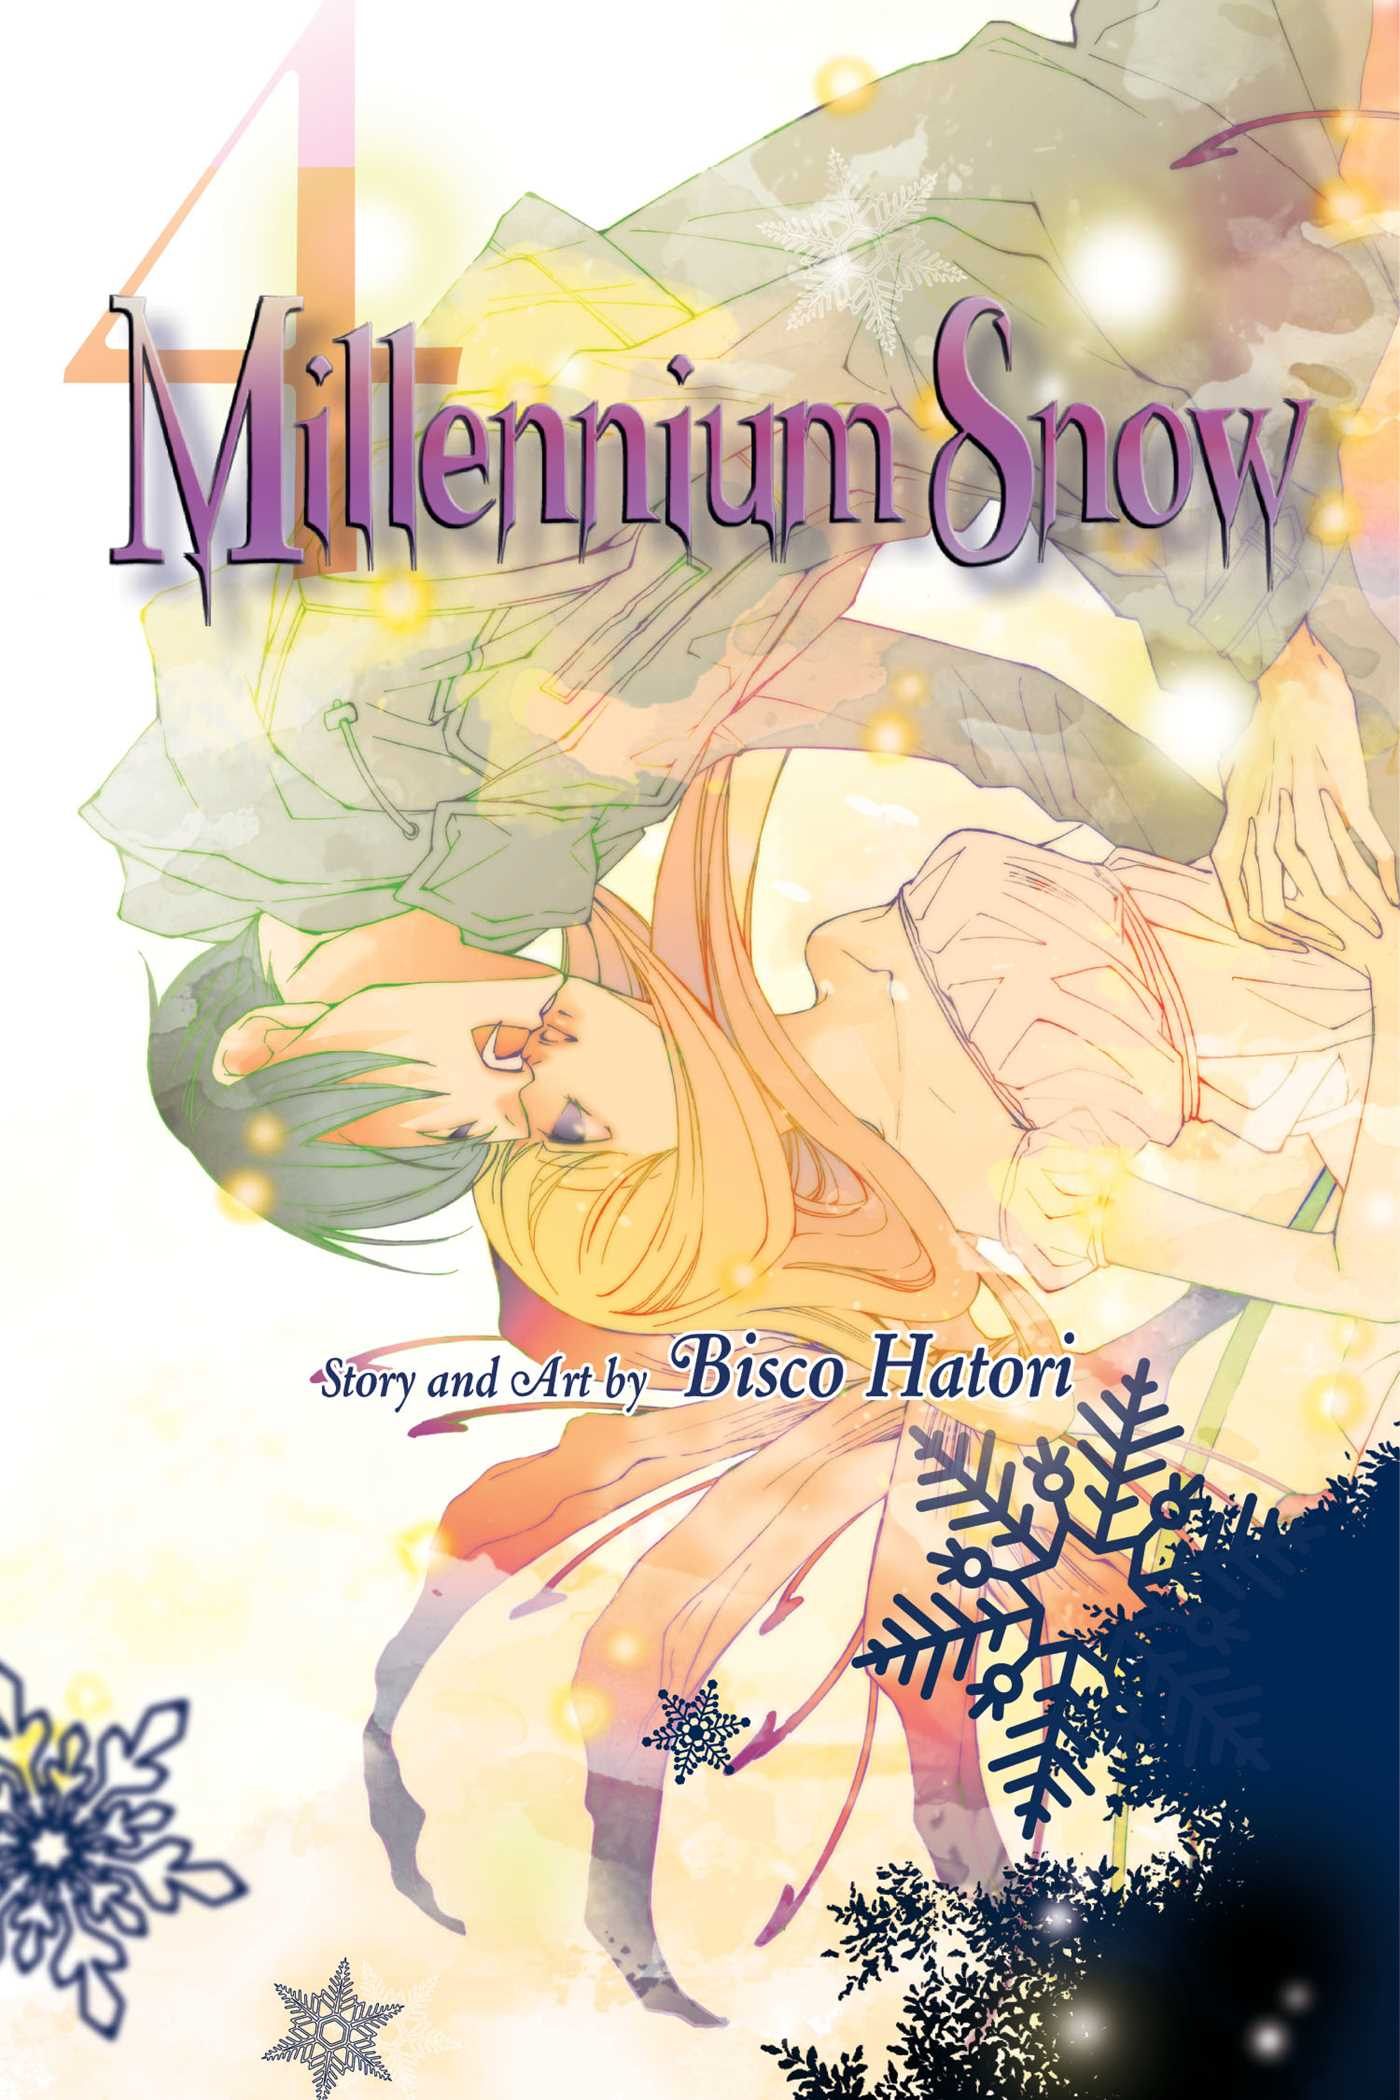 Millennium-snow-vol-4-9781421572468_hr